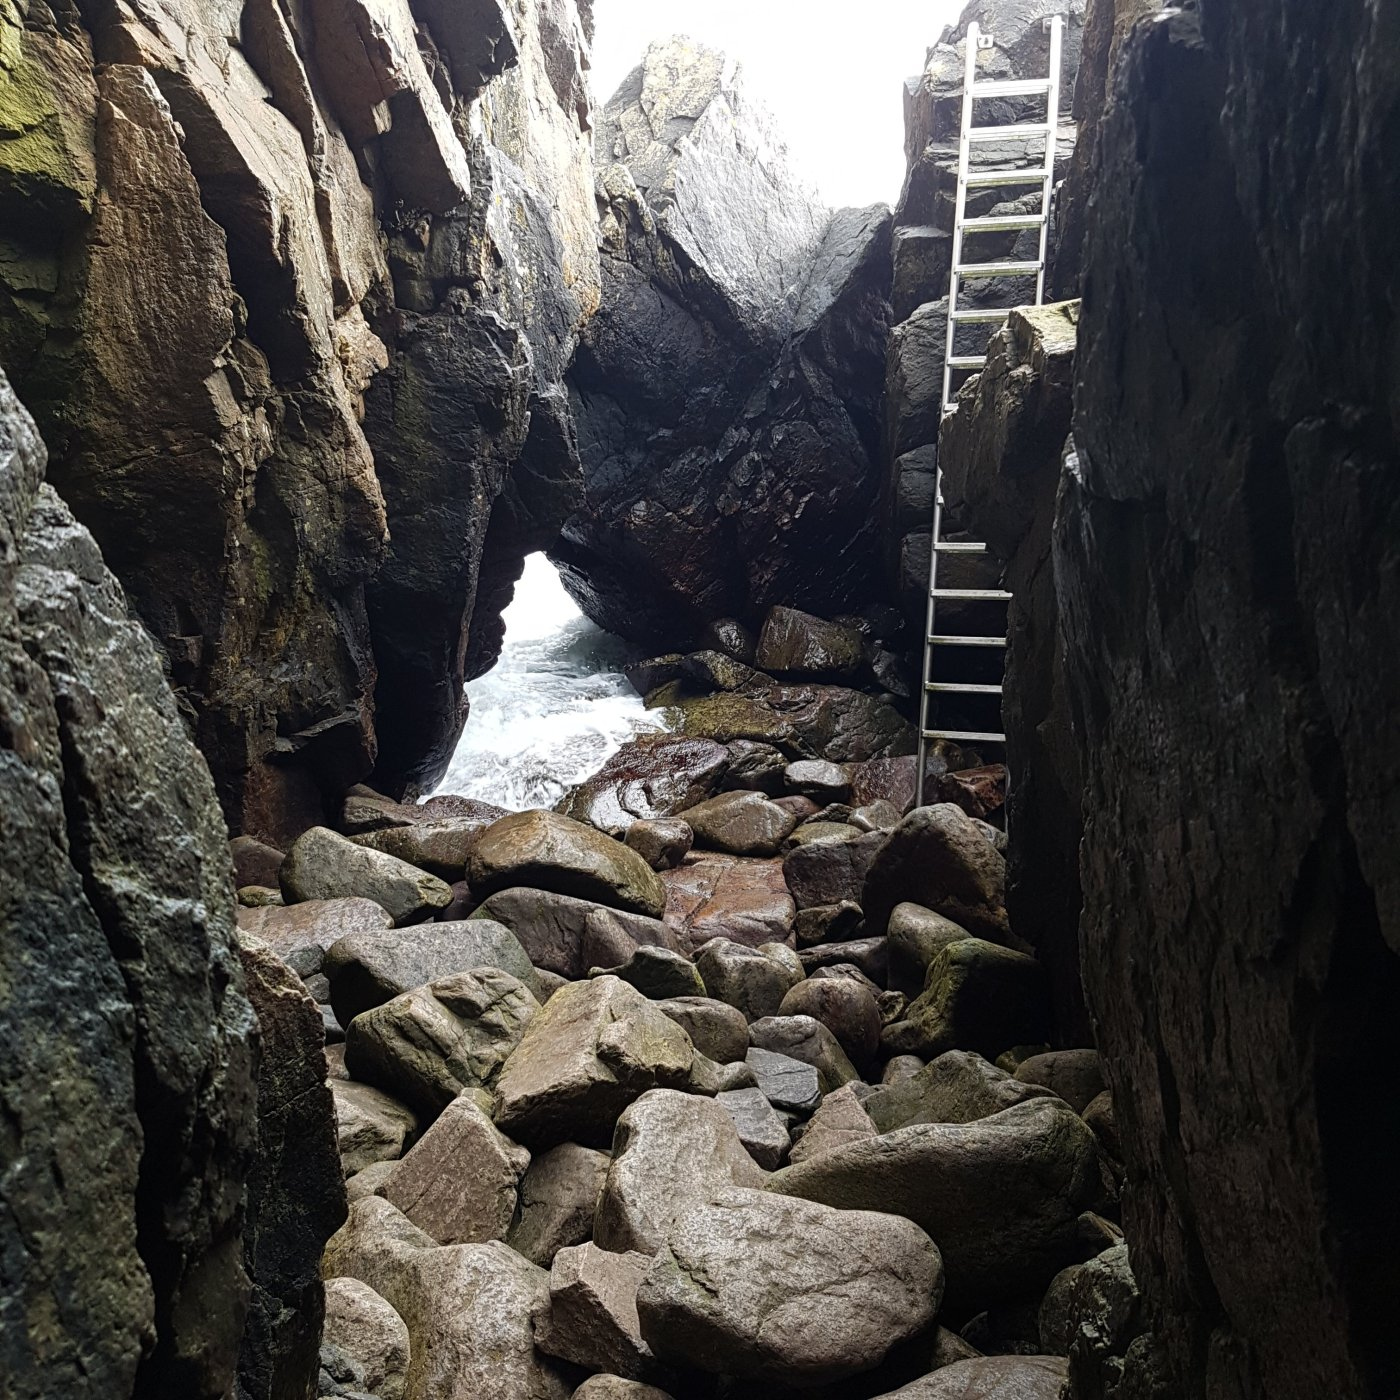 Photo of cave exit along the Bornholm Coast trail, photo by Frits Ahlefeldt